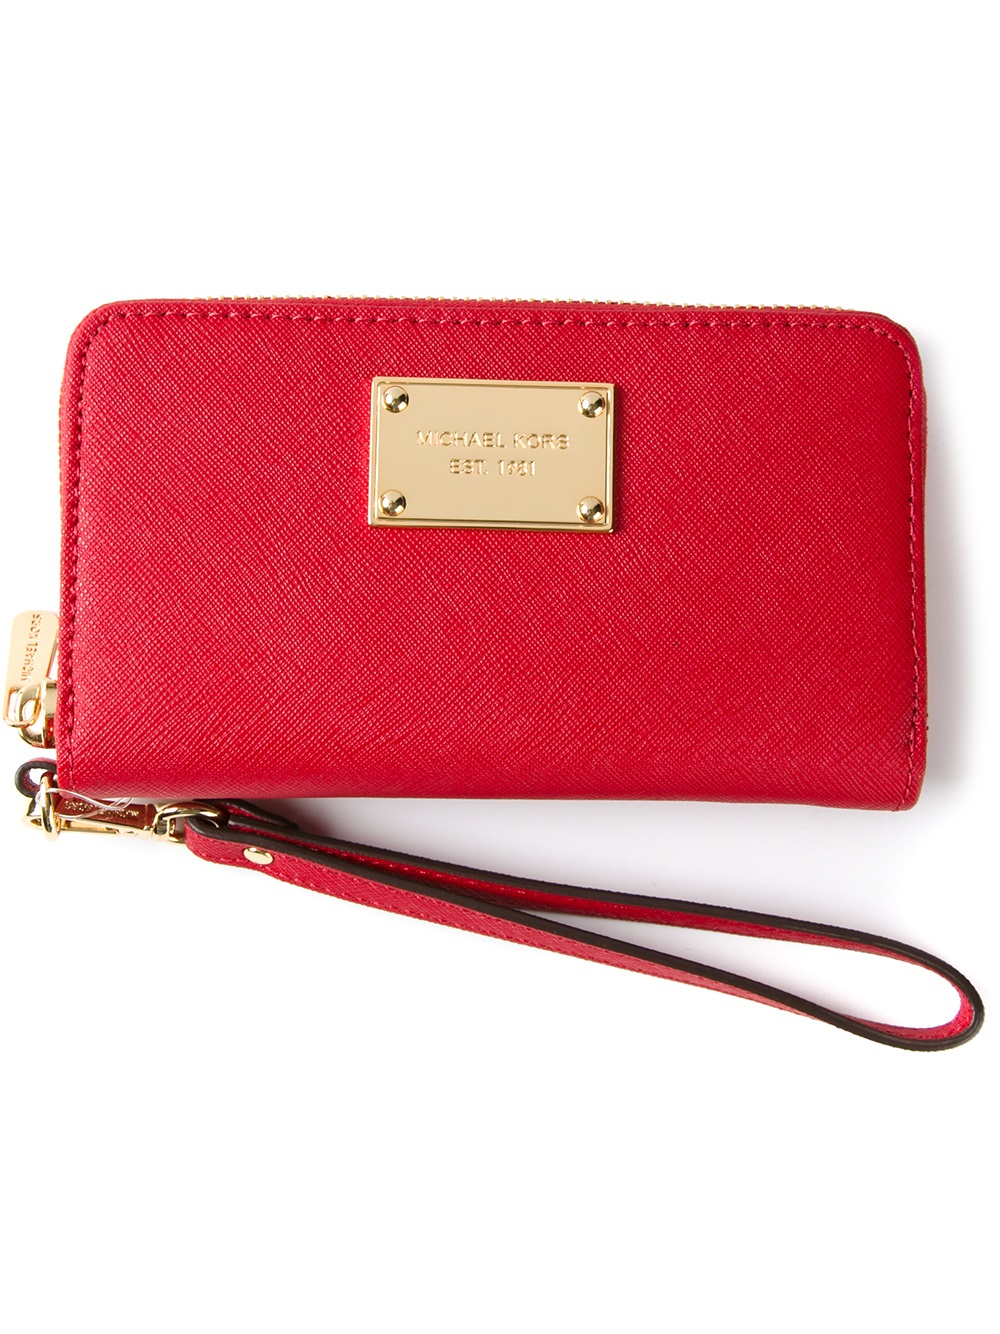 daca7f79d44c Red Wallets Michael Kors | Stanford Center for Opportunity Policy in ...